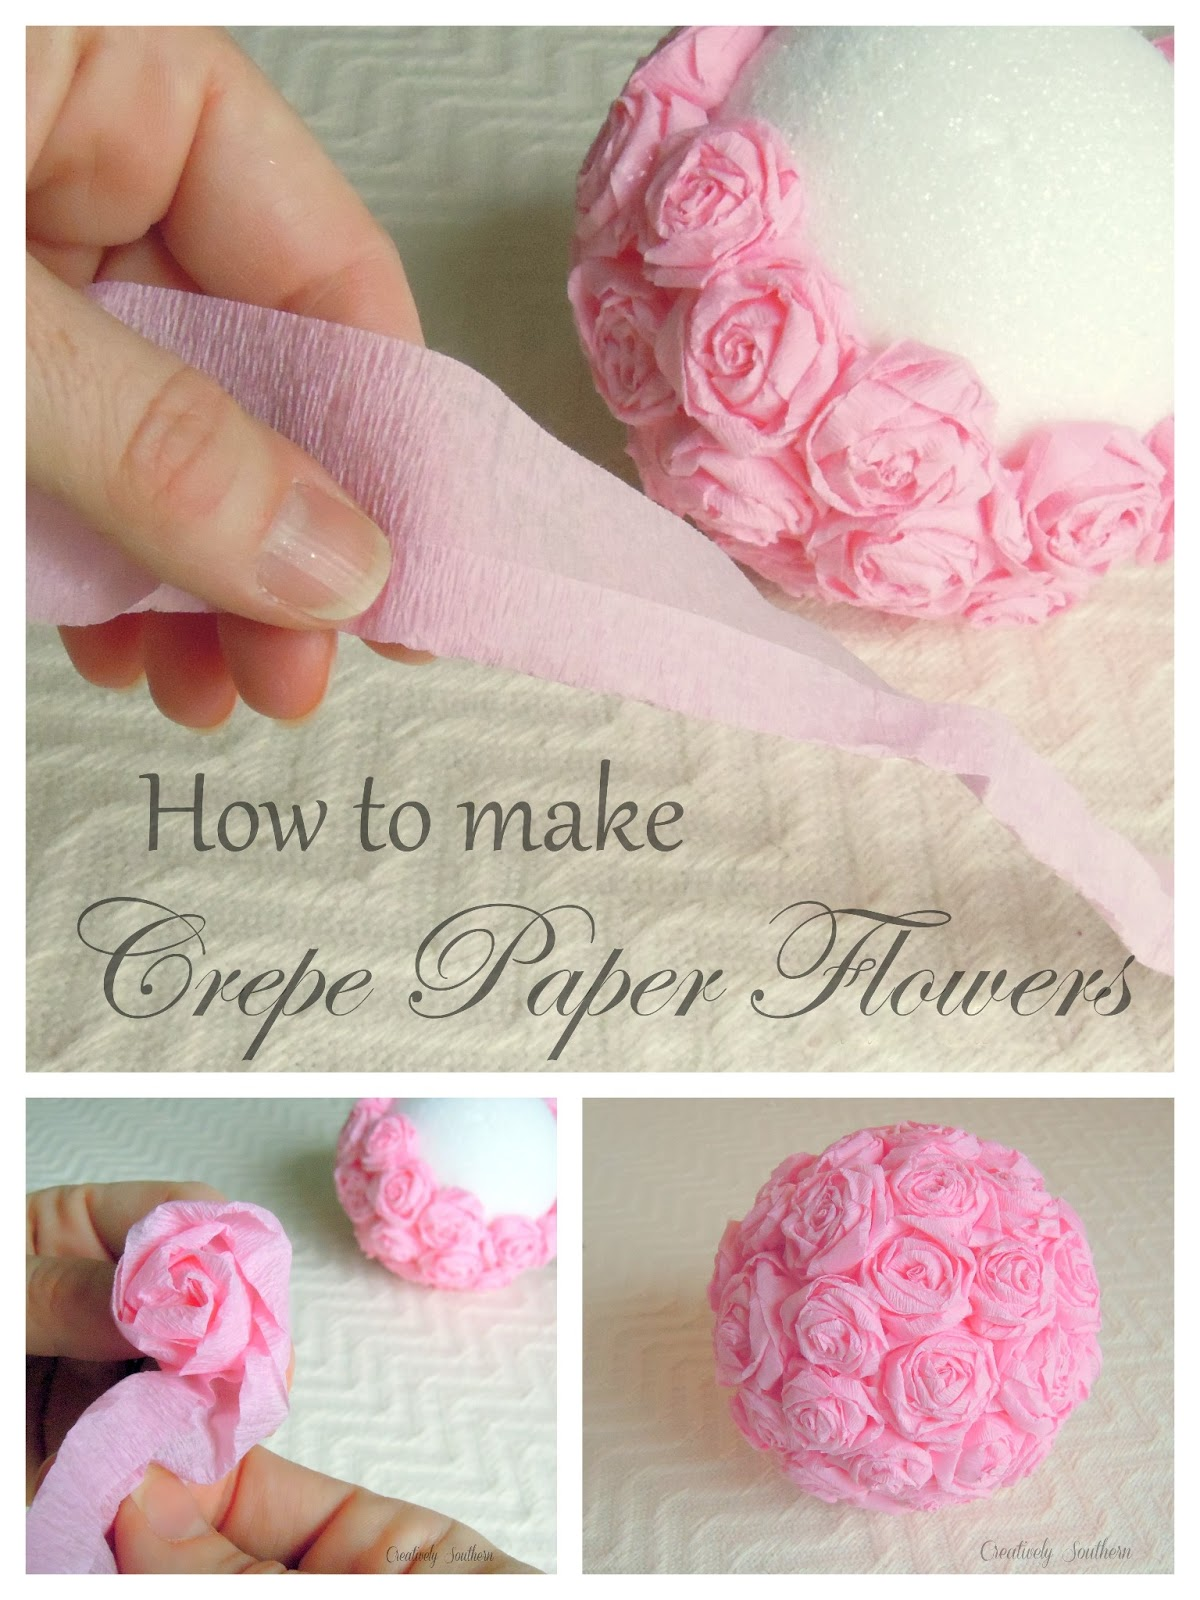 How To Make Craft Paper Flowers - Paper Crafts